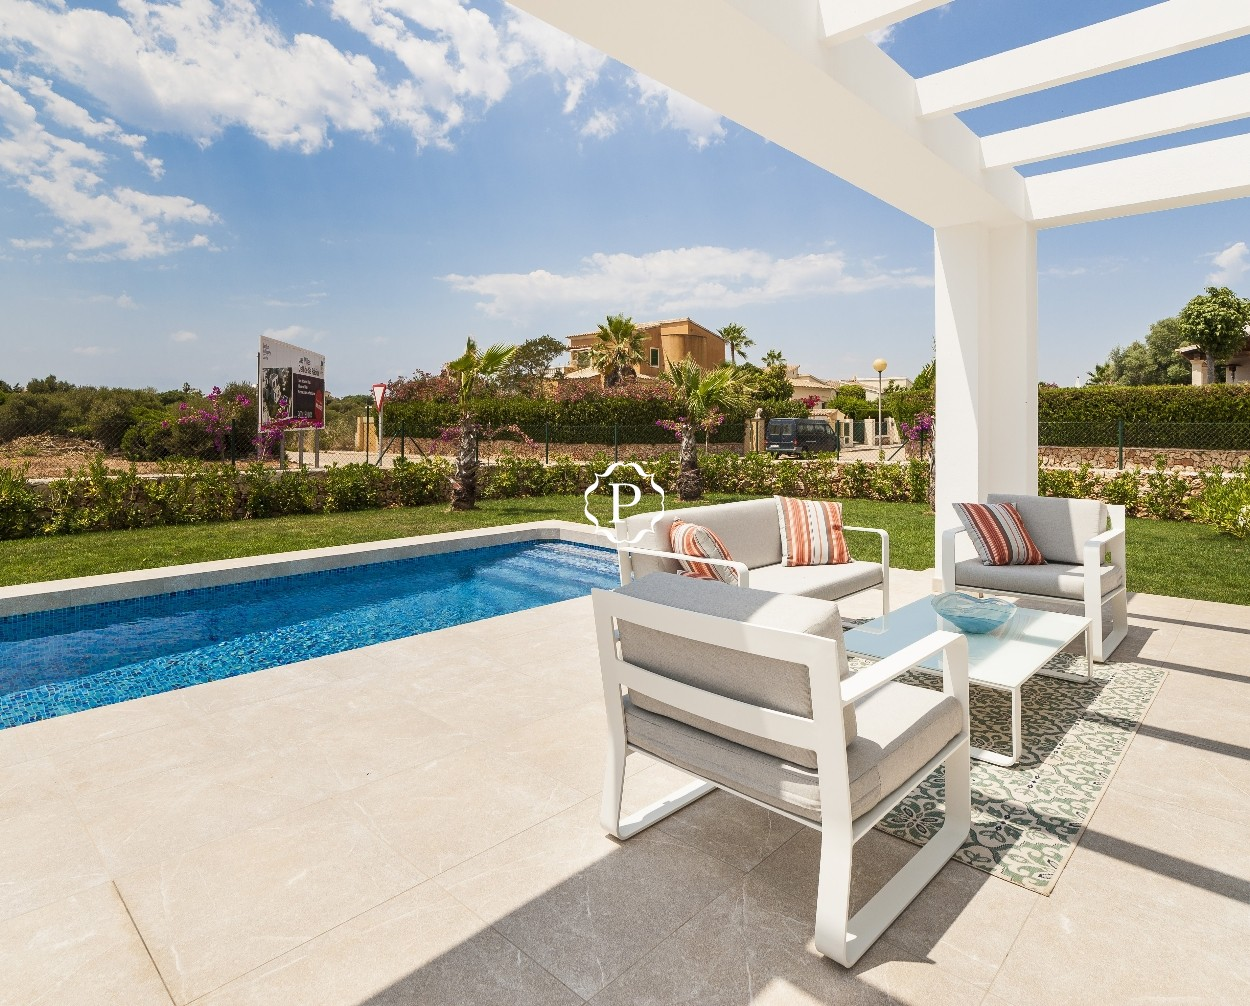 Villas for sale in Sa Rapita - Campos - South West of Mallorca